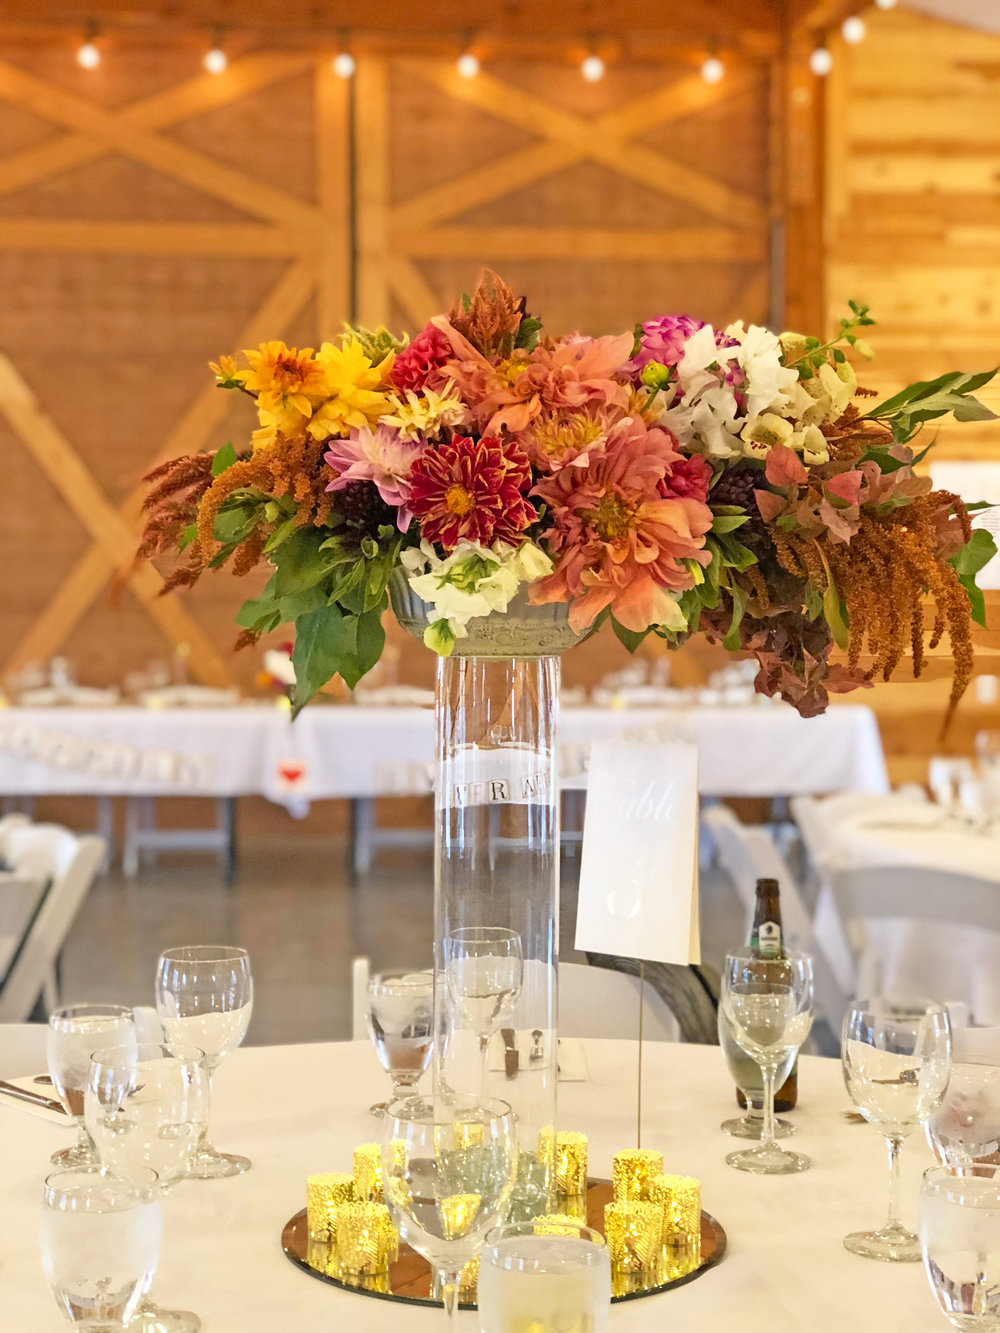 Rugge Horizon September Wedding Decor.jpg